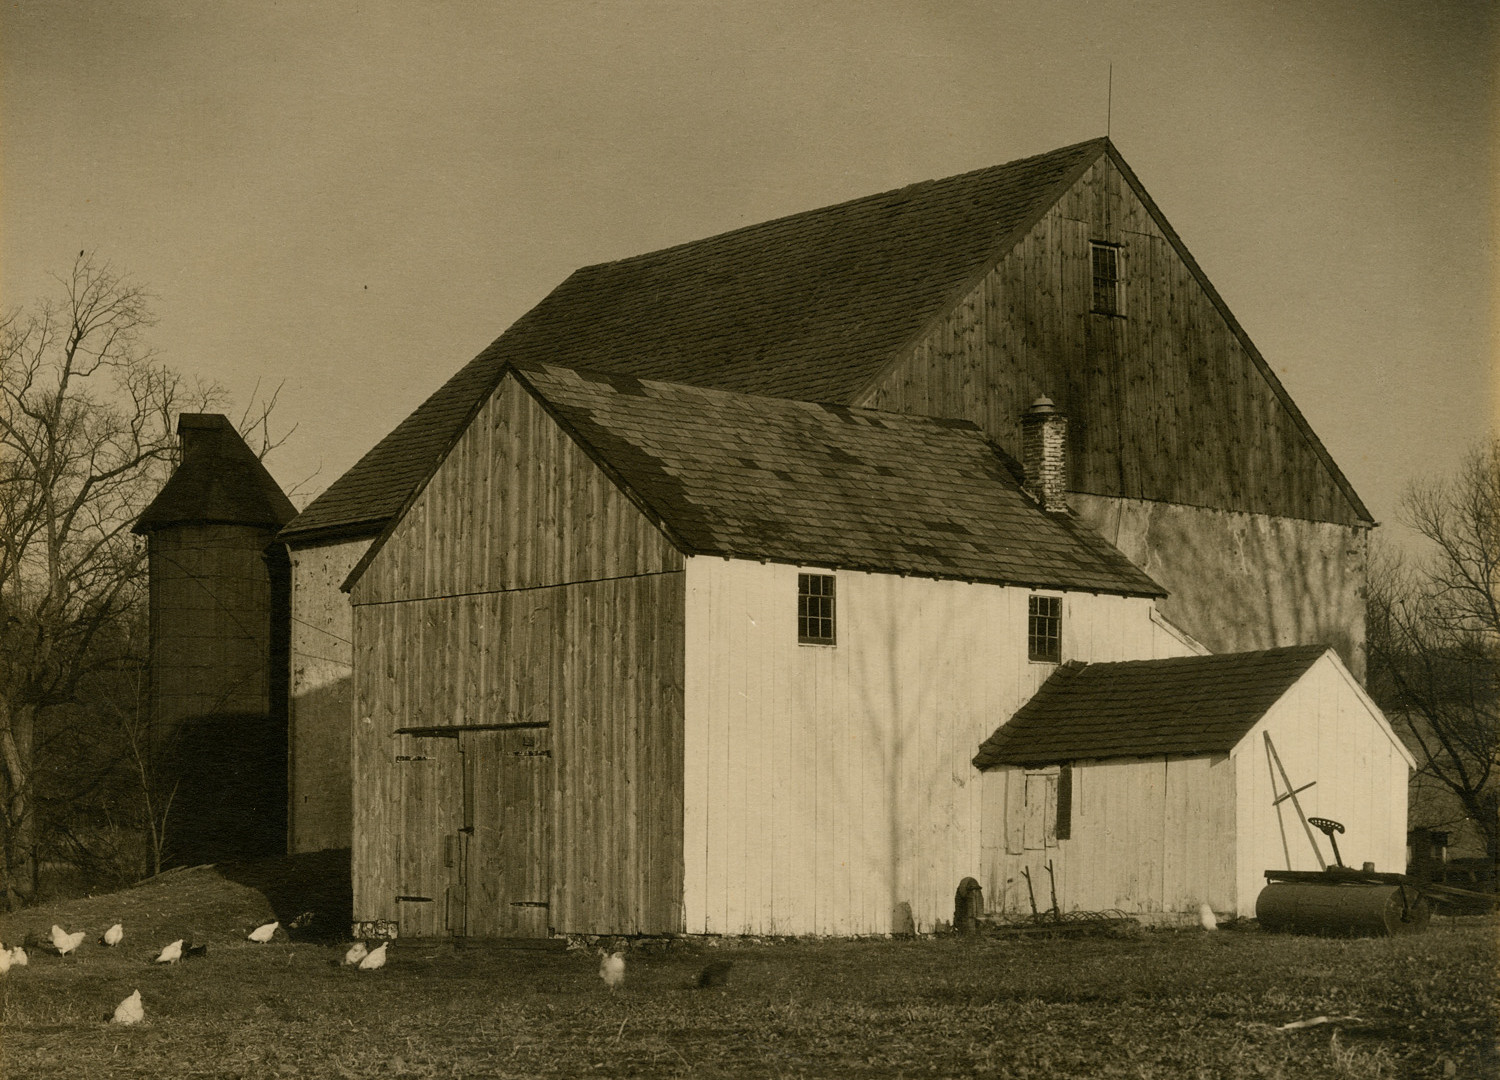 Charles Sheeler, Bucks County Barn, 1918